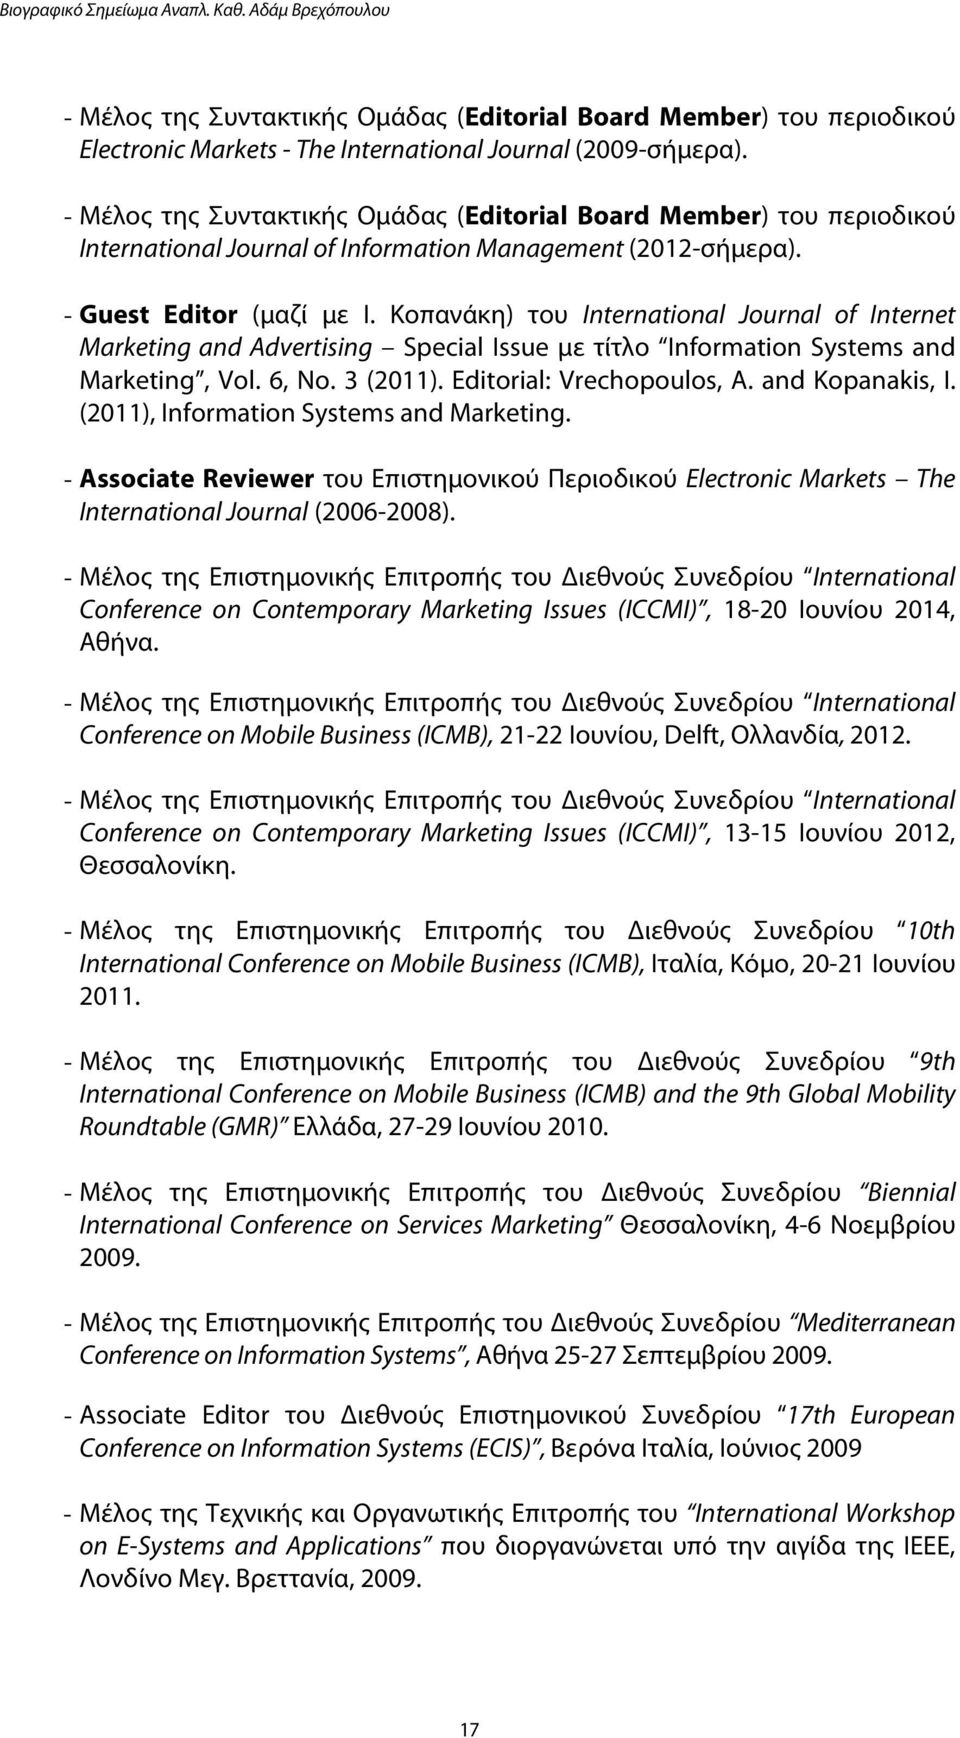 Κοπανάκη) του International Journal of Internet Marketing and Advertising Special Issue με τίτλο Information Systems and Marketing, Vol. 6, No. 3 (2011). Editorial: Vrechopoulos, A. and Kopanakis, I.